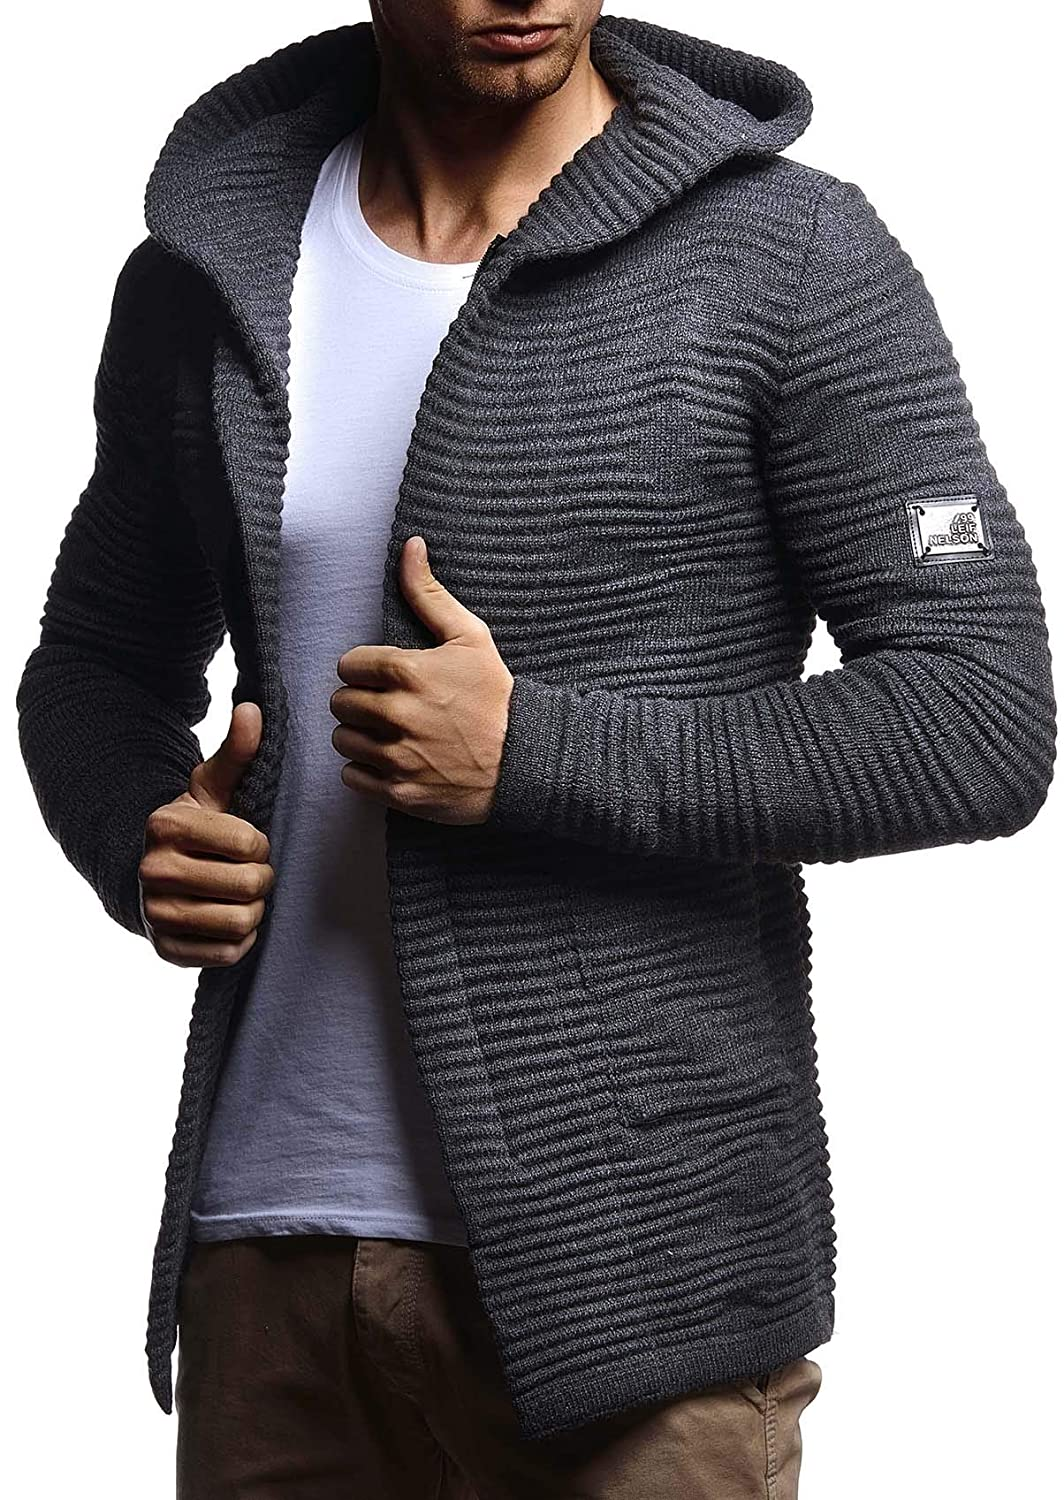 Amazon.com: LEIF NELSON Mens Stylish Knit Sweater Sweatshirt | Knitted Turtleneck Pullover | LN7180; XX-Large, Anthracite: Clothing